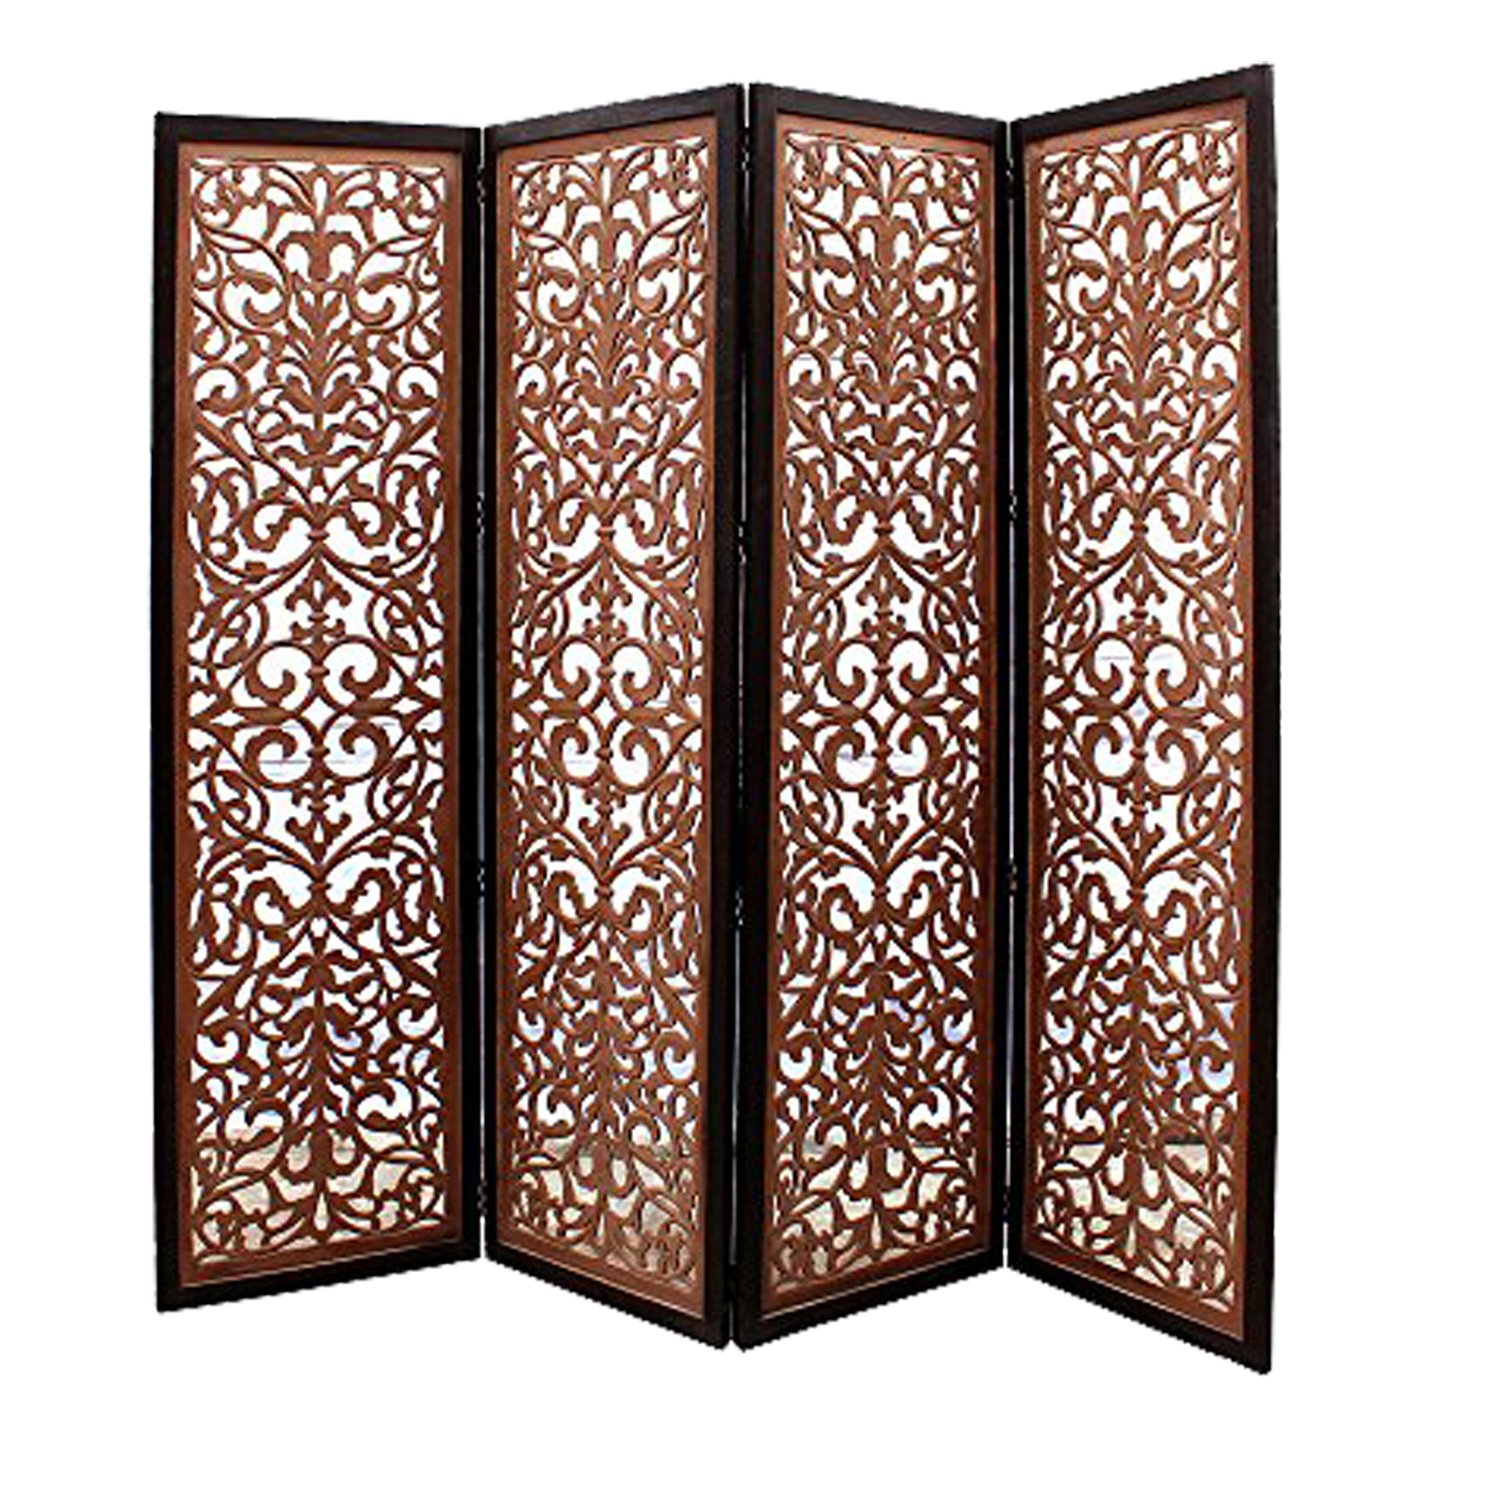 Centio Wooden  Handcrafted Wooden Room Divider/Screen Separator 4 Panel